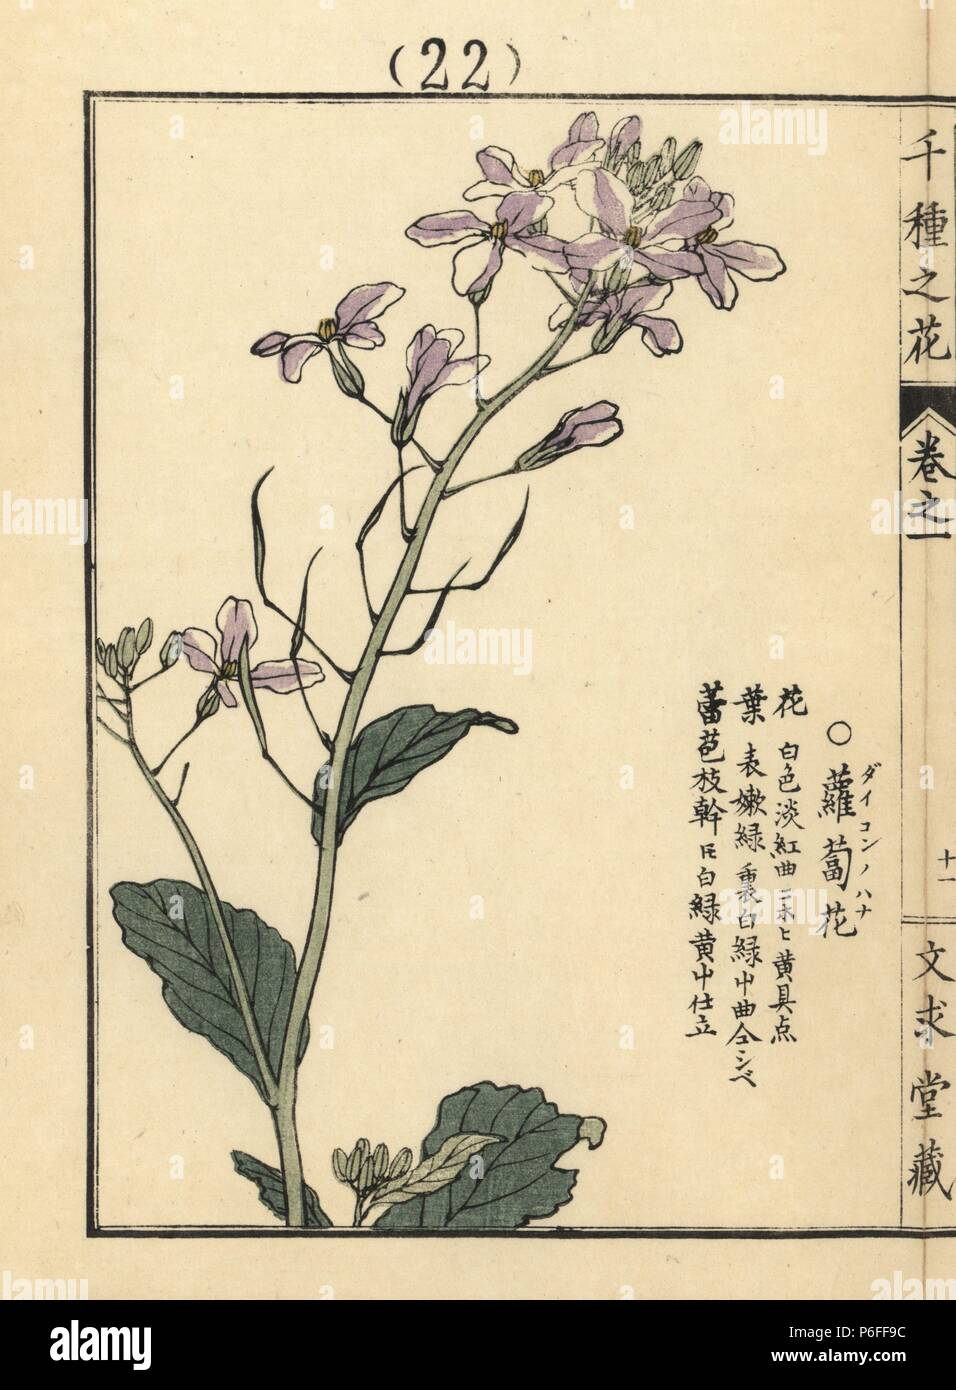 Daikon no hana or white radish flower, Raphanus sativus var. longipinnatus. Handcoloured woodblock print by Kono Bairei from Senshu no Hana (One Thousand Varieties of Flowers), Bunkyudo, Kyoto, 1900. Stock Photo